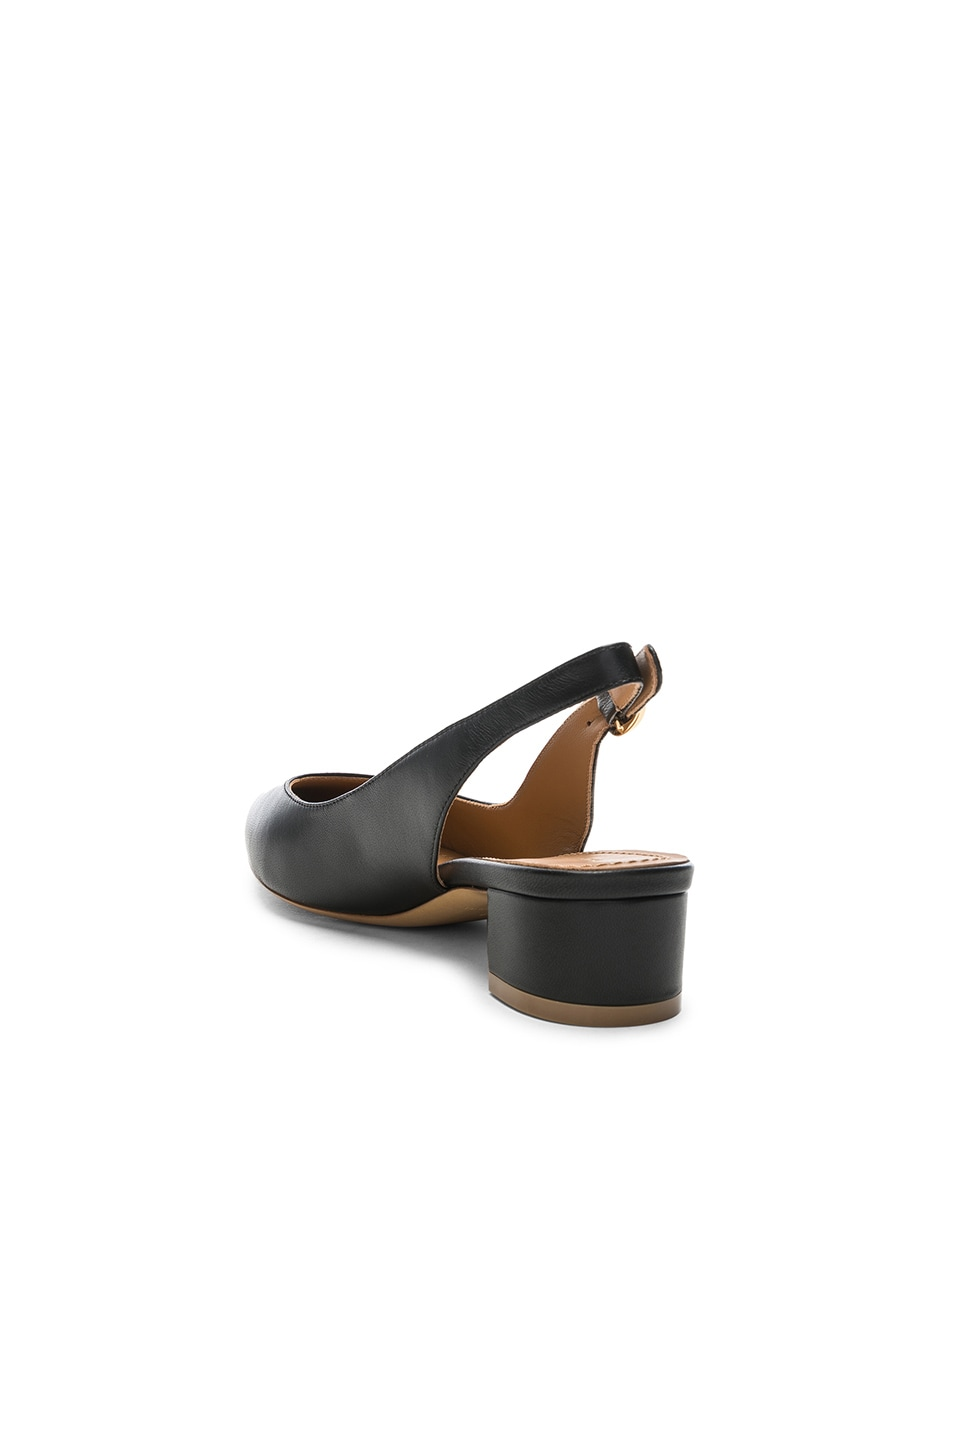 Image 3 of Mansur Gavriel Lamb Slingback Heel in Black